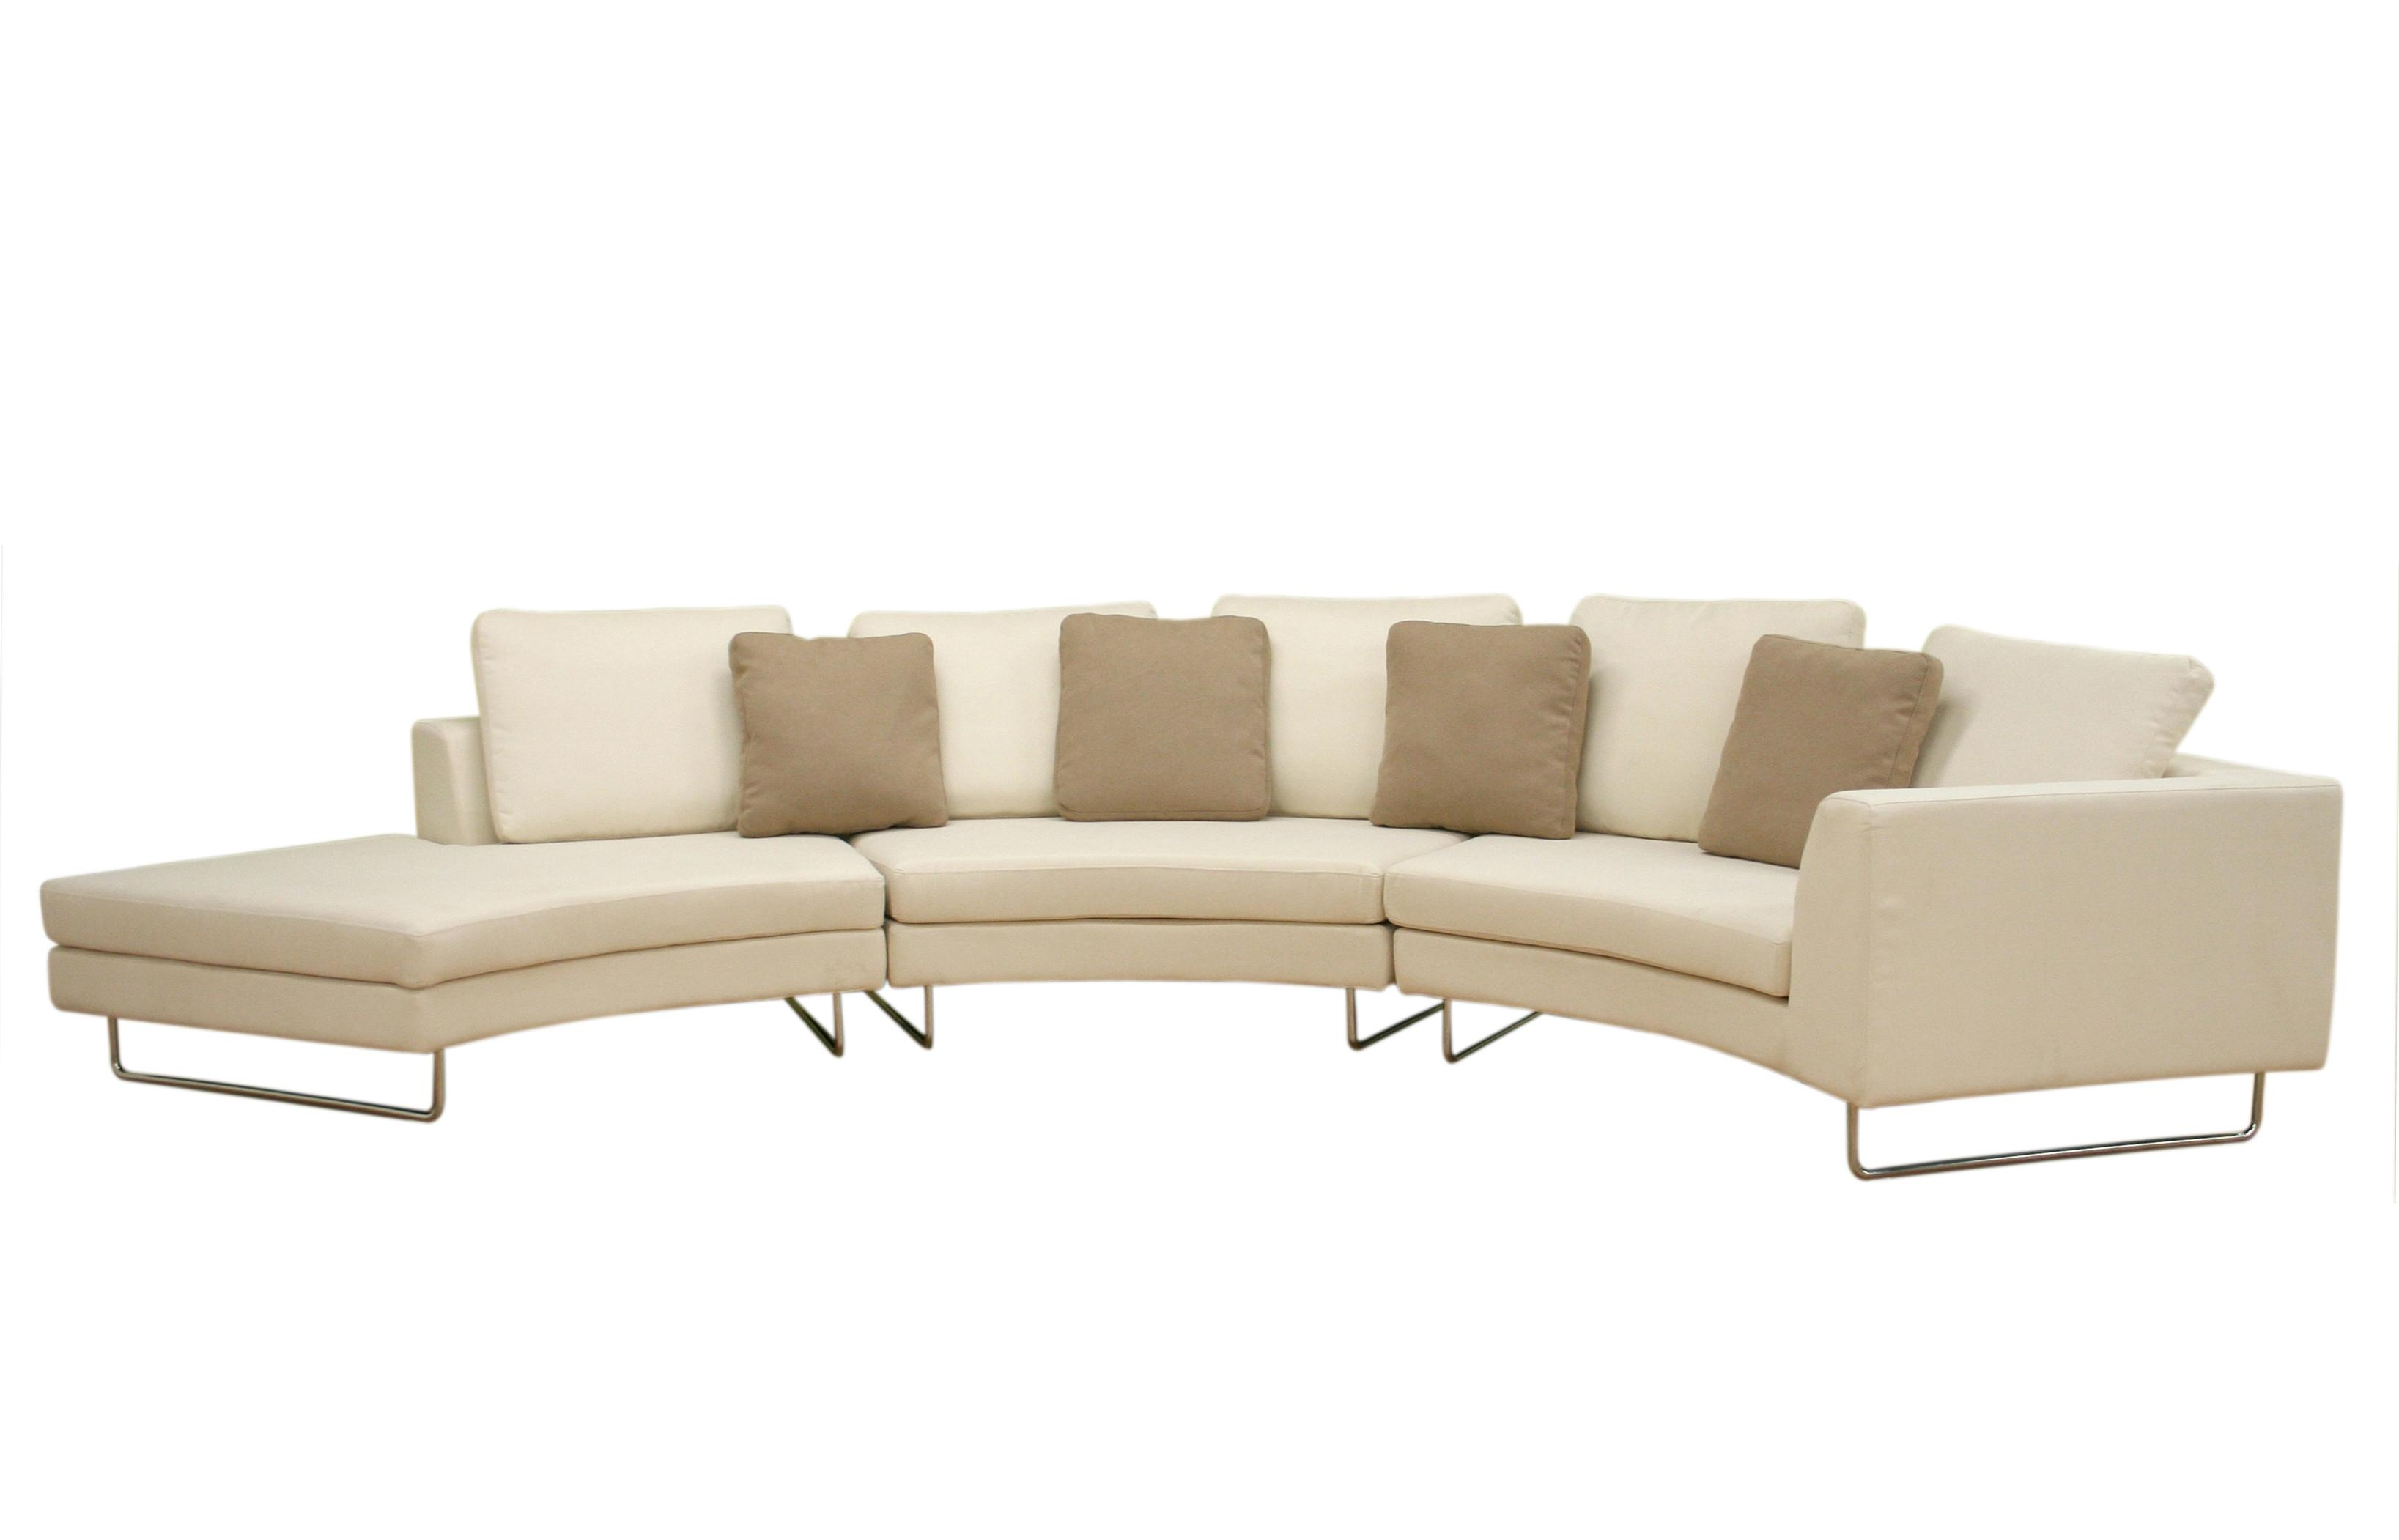 Curved Sectional Sofa Sofas North Carolina With Recliner Designs In Small Curved Sectional Sofas (View 9 of 20)